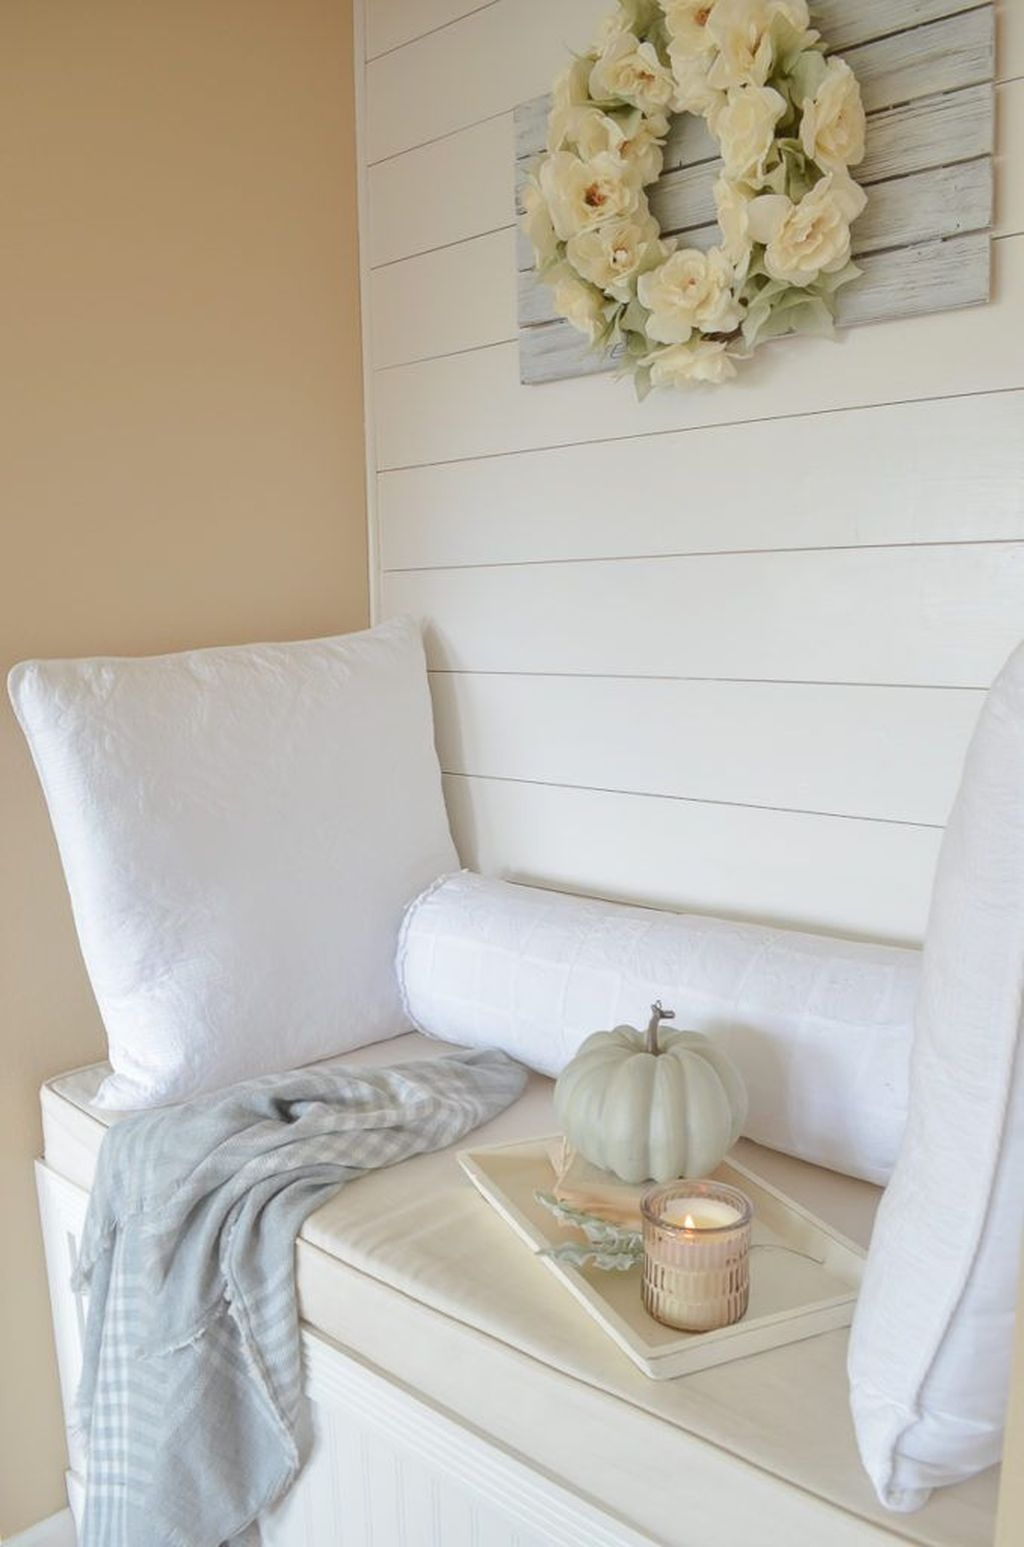 Excellent Fall Decorating Ideas For Home With Farmhouse Style10